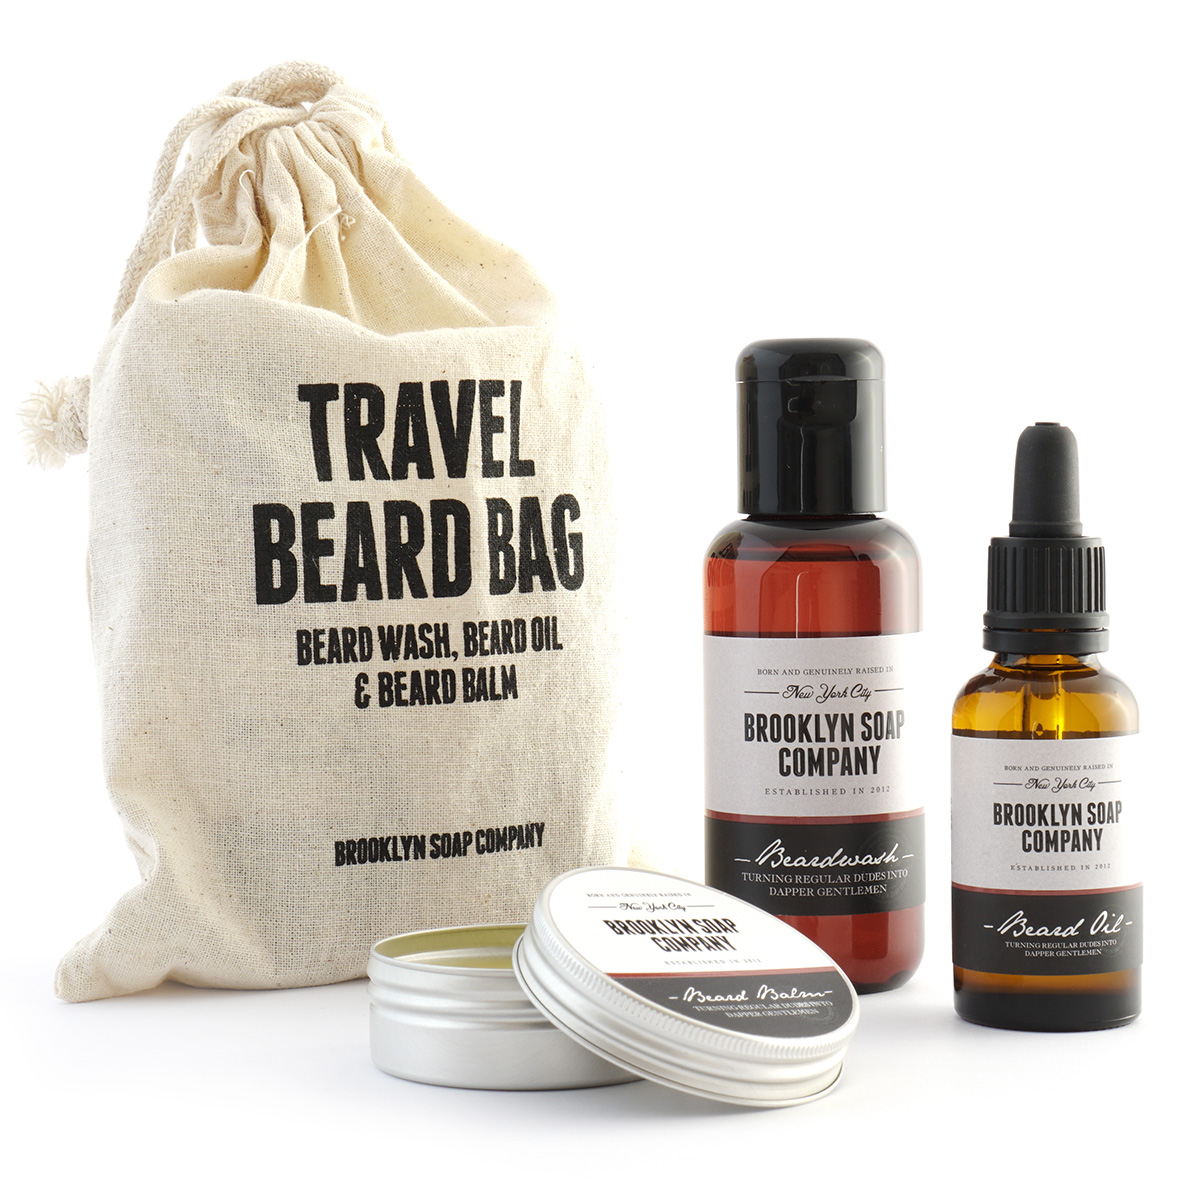 Beard Bag Travel